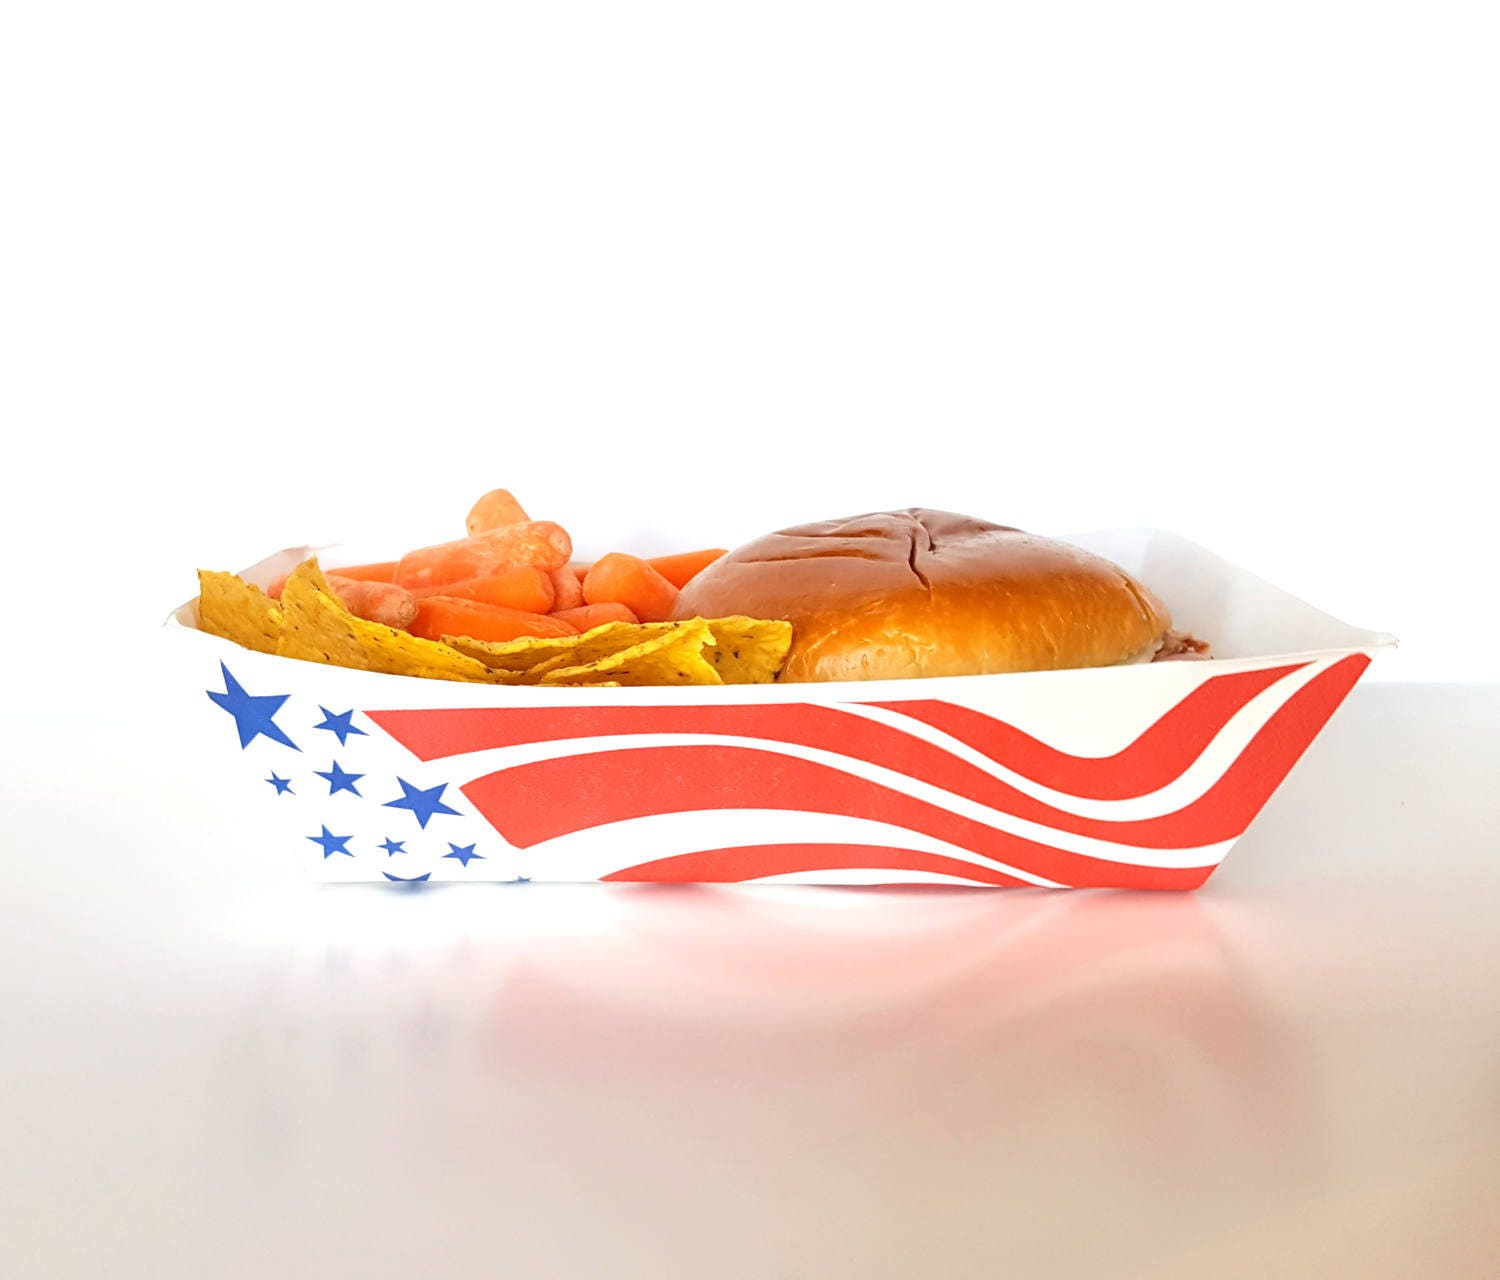 24 Extra Large American Flag Paper Food Trays 5 lbs Takeout